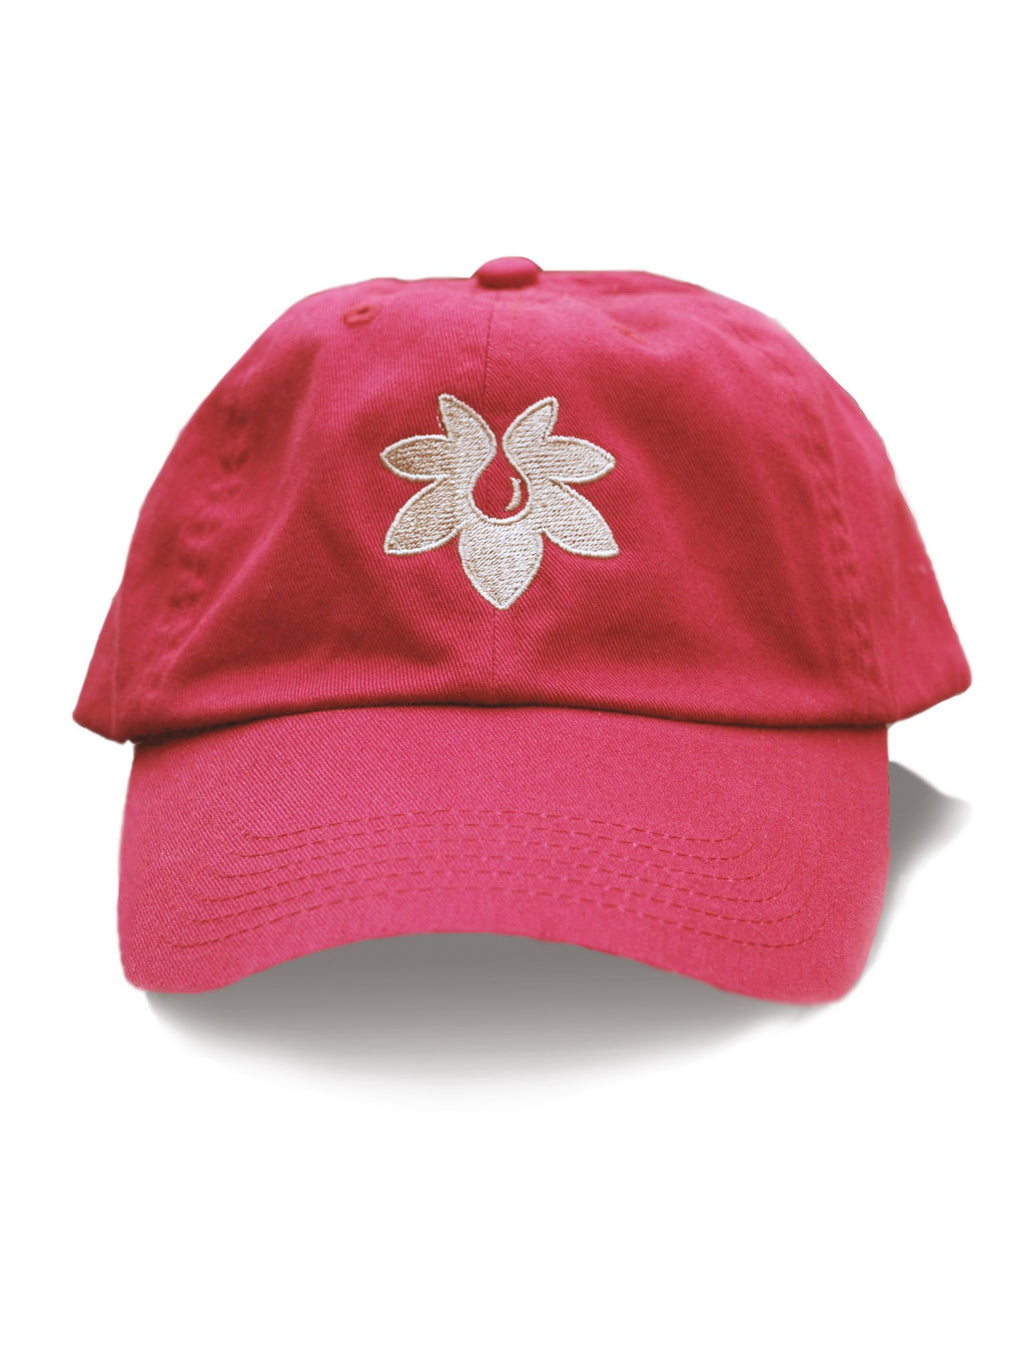 The Red Flower Hat